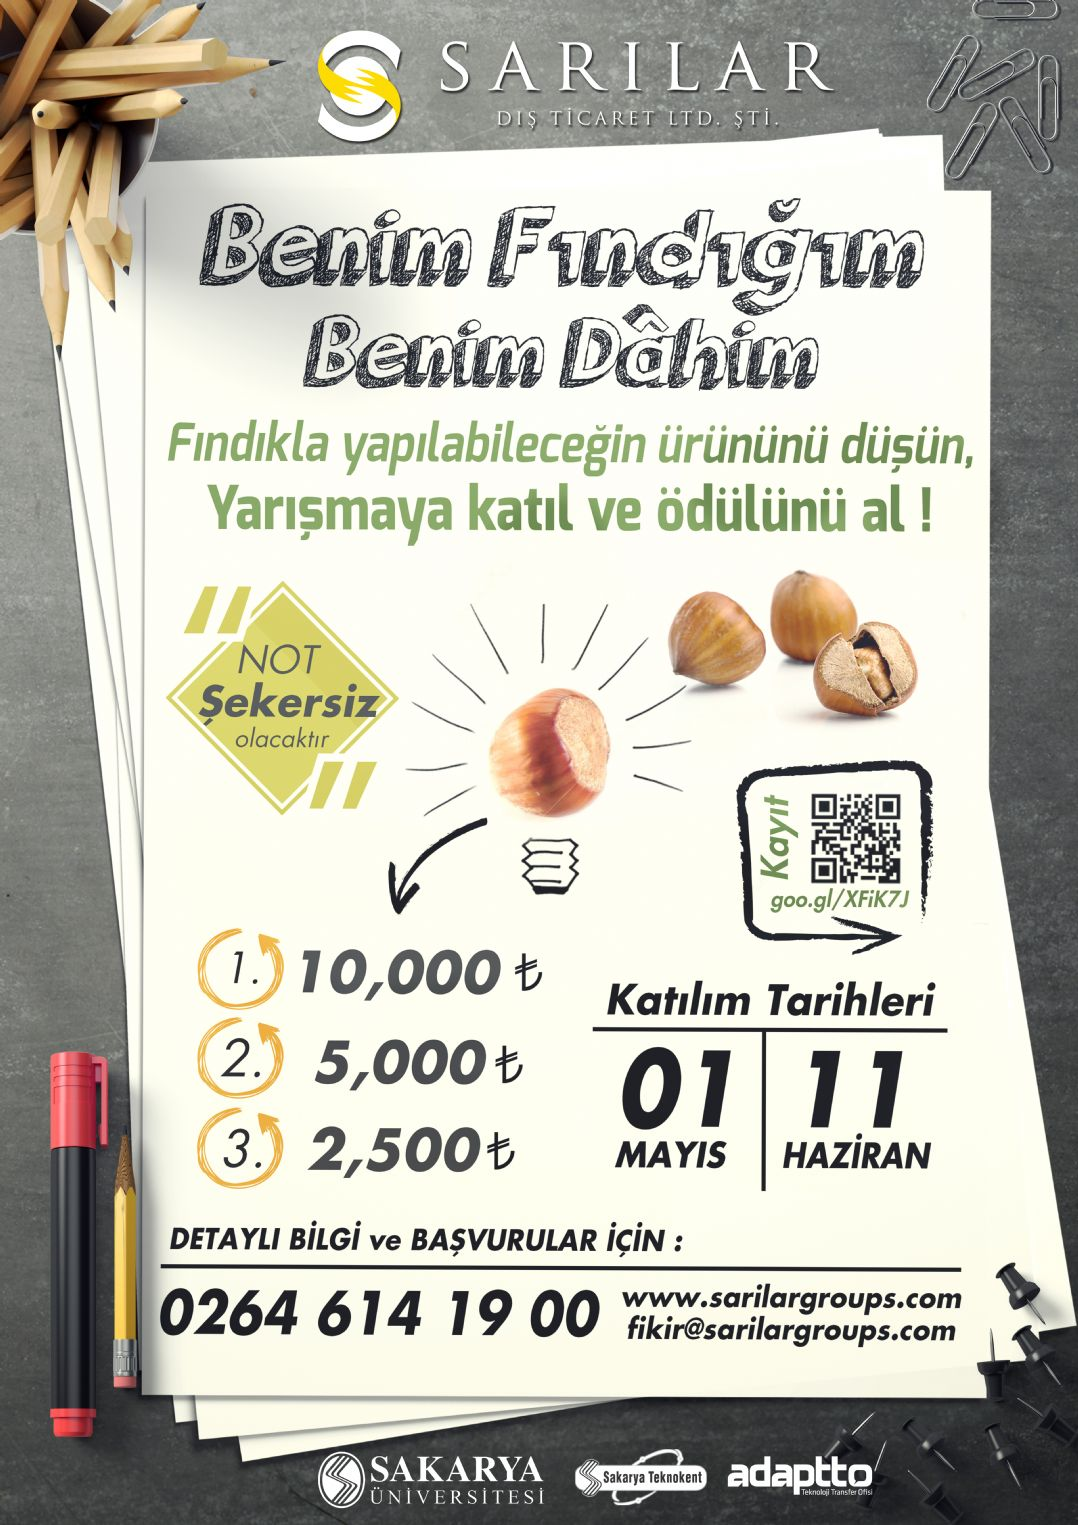 Award Winning Hazelnut Contest from Sarılar